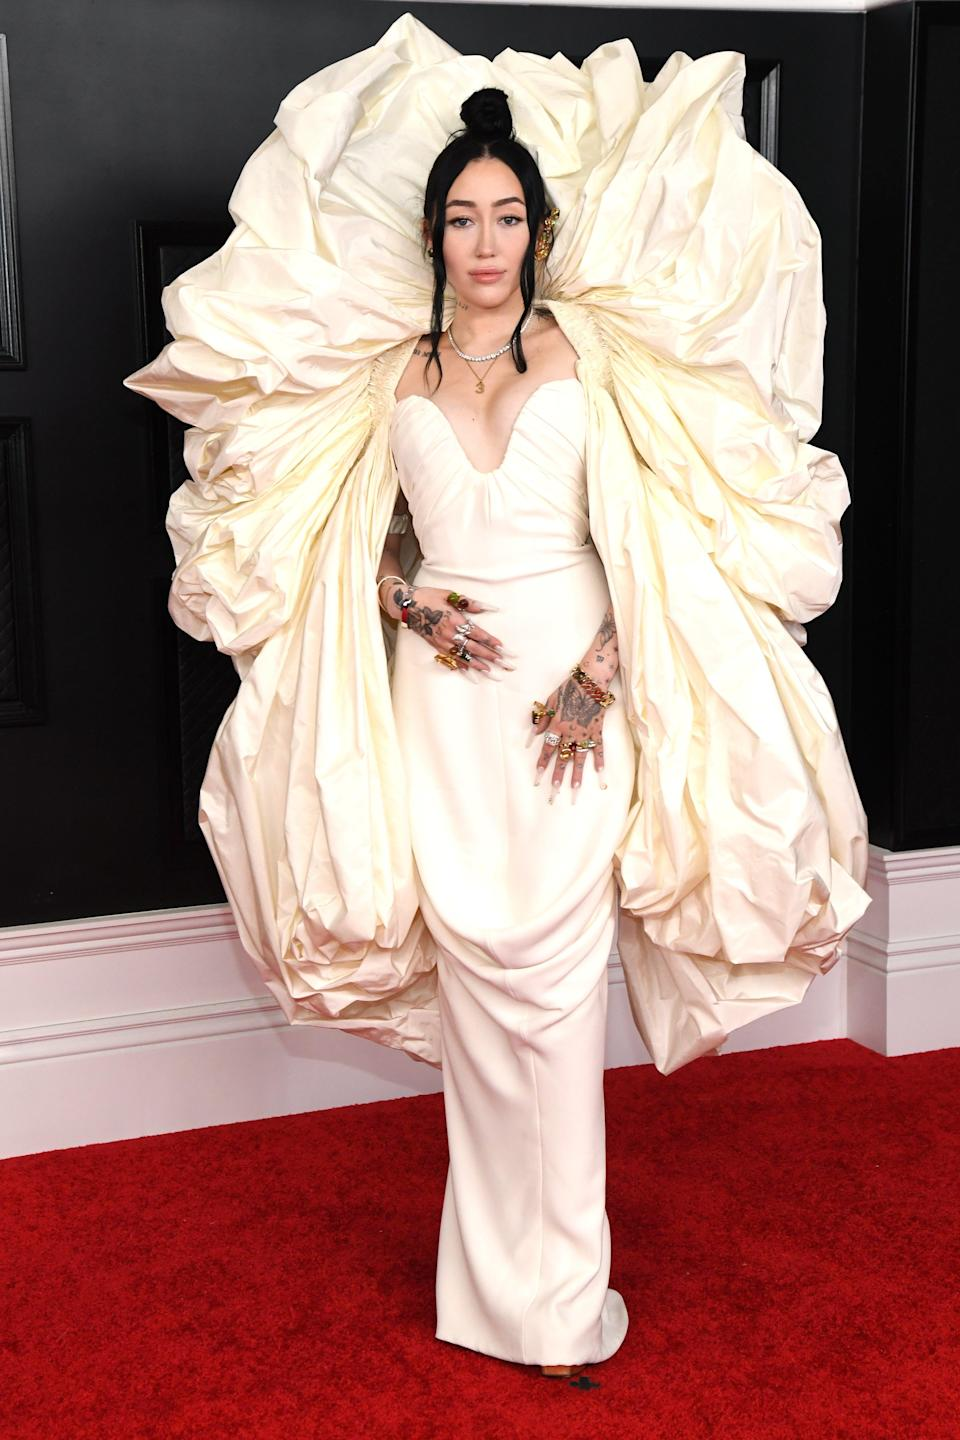 """<h2>Noah Cyrus in Schiaparelli Haute Couture</h2><br>Noah Cyrus plucked this angelic Schiaparelli look straight off the couture runway for the Grammys red carpet. <span class=""""copyright"""">Photo: Kevin Mazur/Getty Images.</span>"""